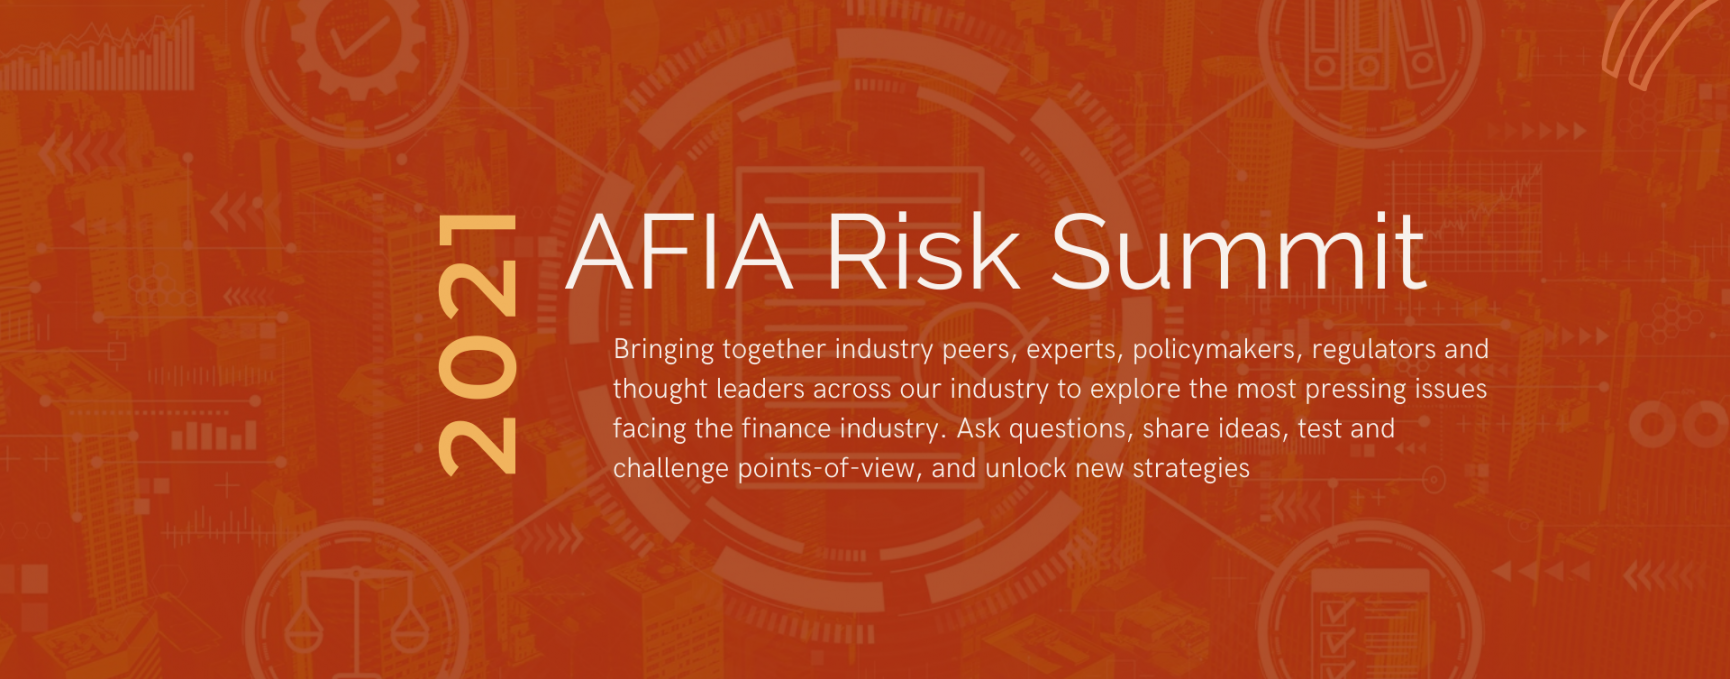 AFIA_Risk_Summit_(3).png